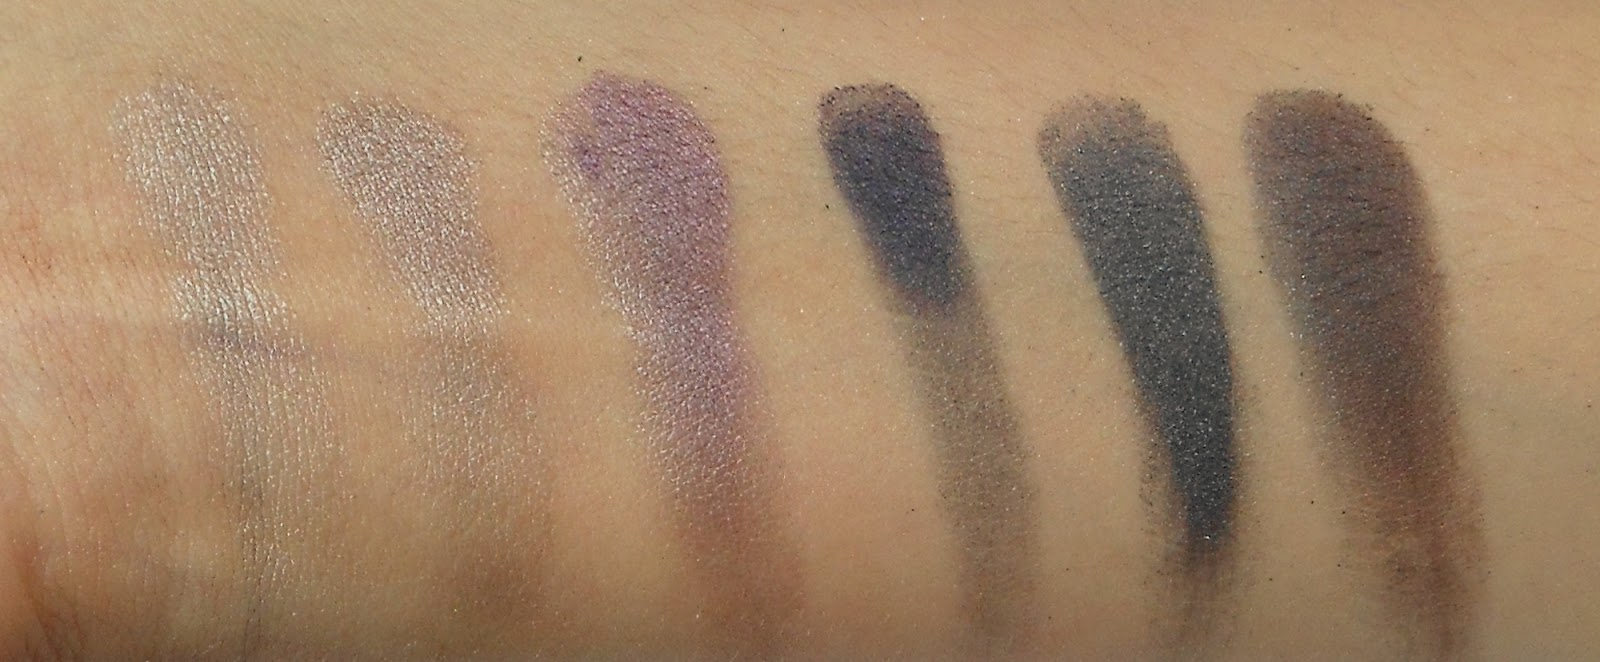 Manhattan Eyeshadow Palette - Welcome to the dark side (Review + Swatches)